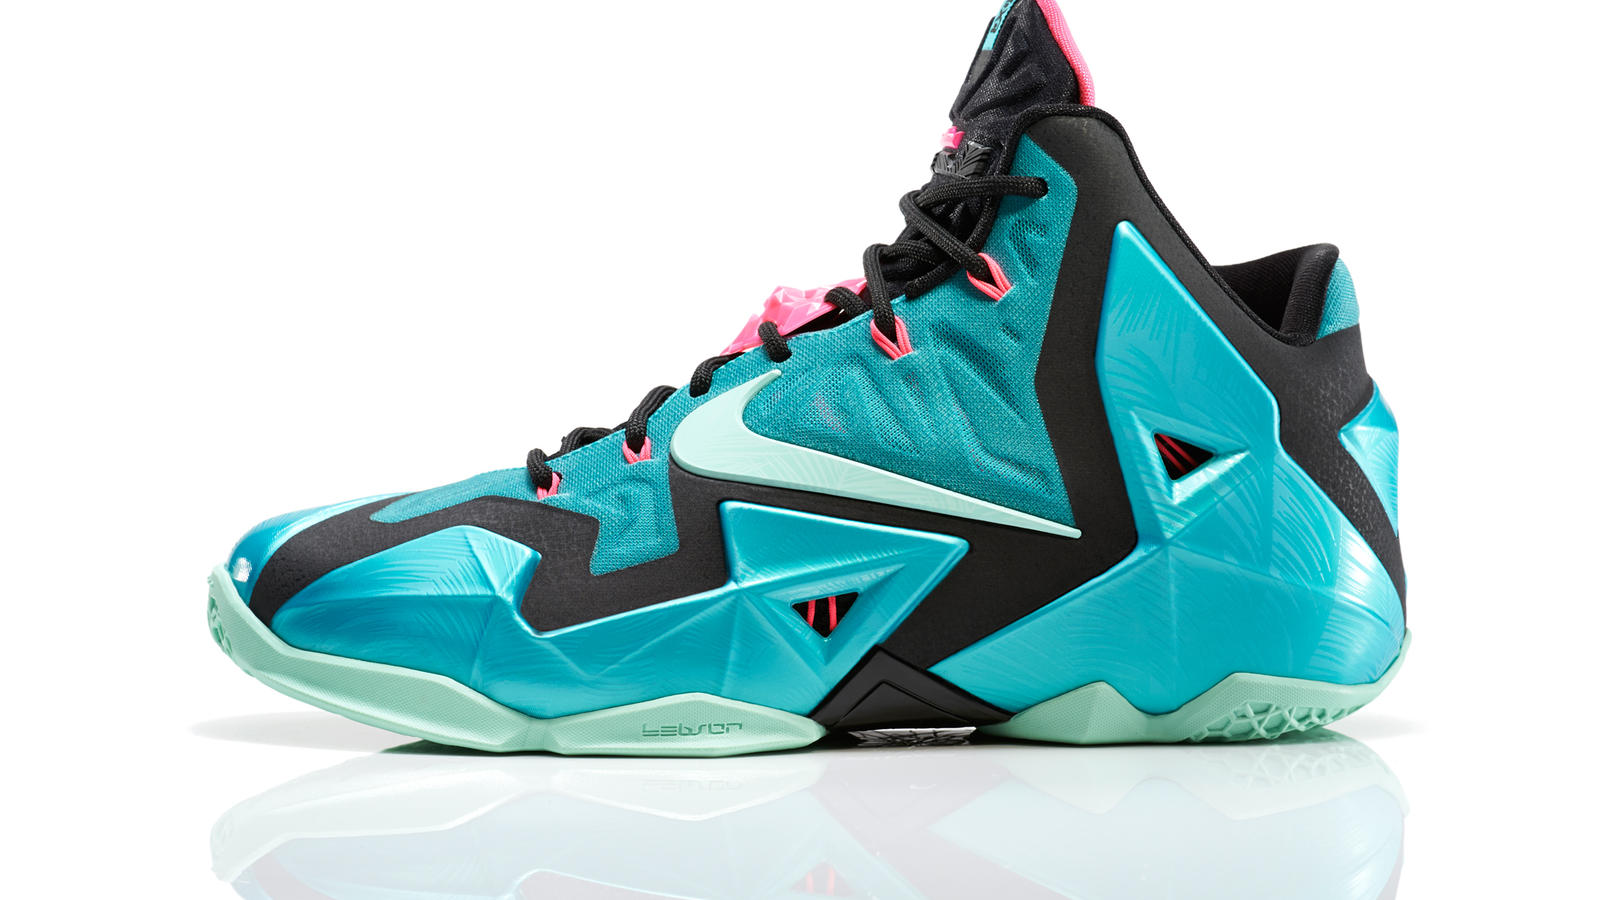 LEBRON 11 South Beach Remixes Past with